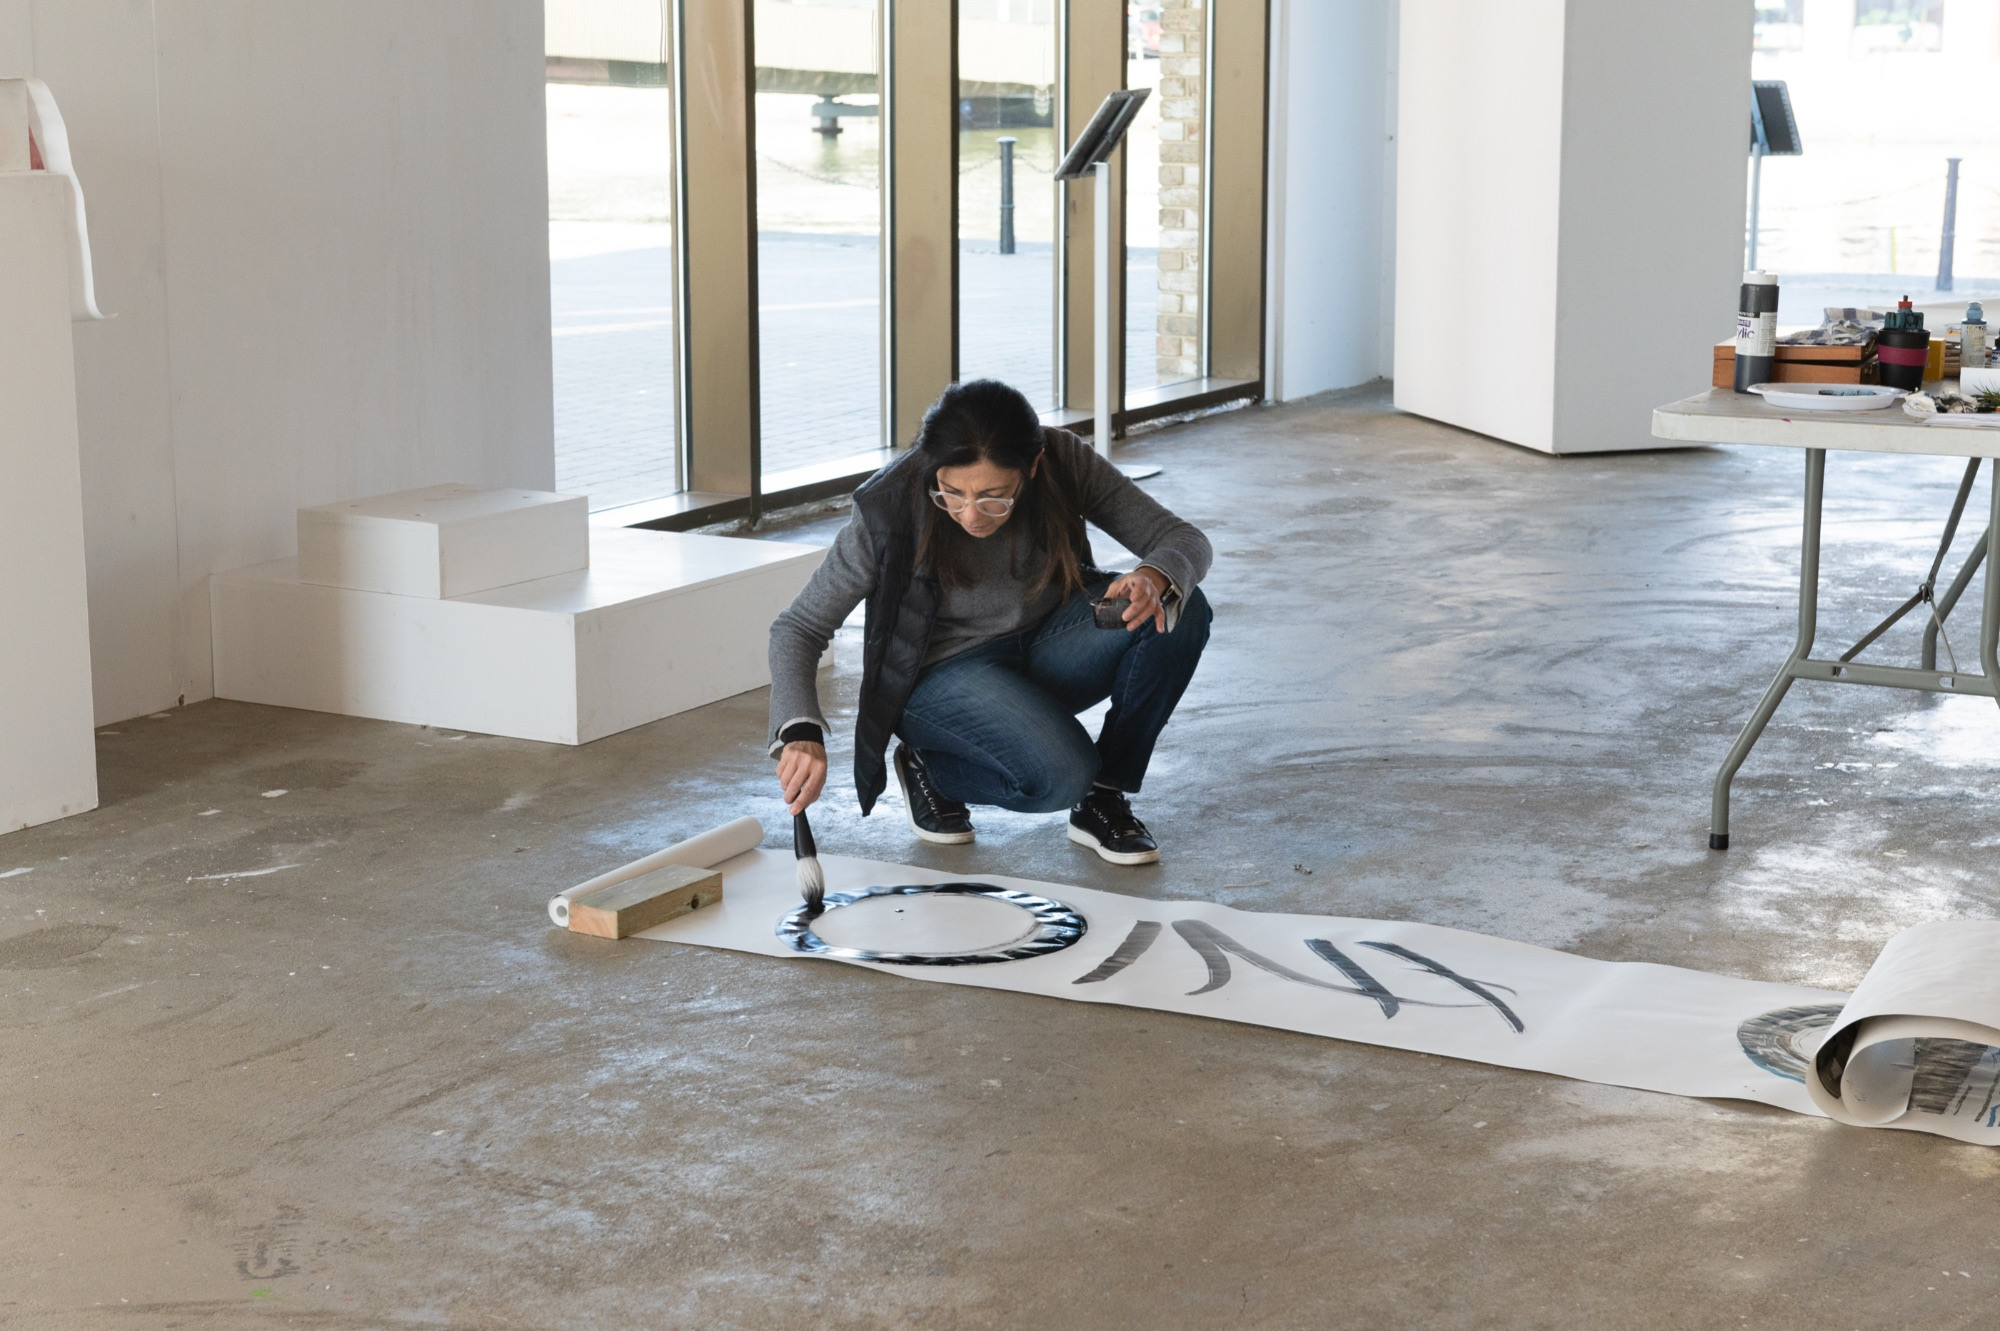 Artist bending over to work on a scroll on the floor